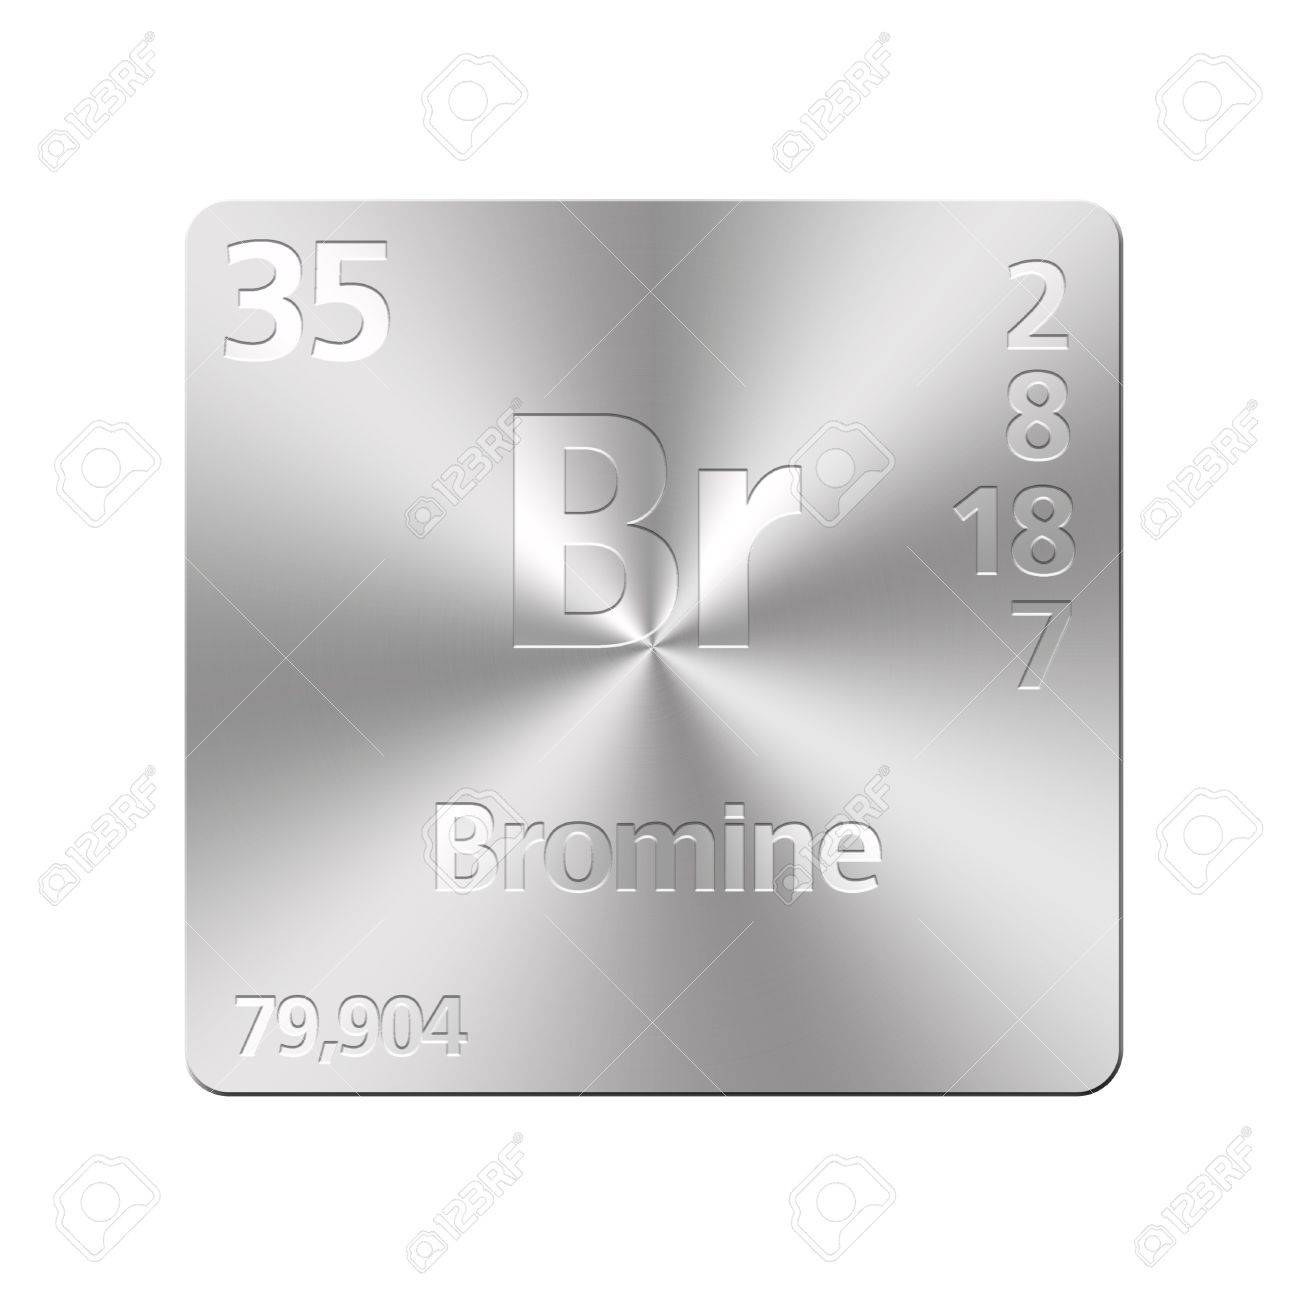 Isolated metal button with periodic table bromine stock photo isolated metal button with periodic table bromine stock photo 16057619 gamestrikefo Gallery